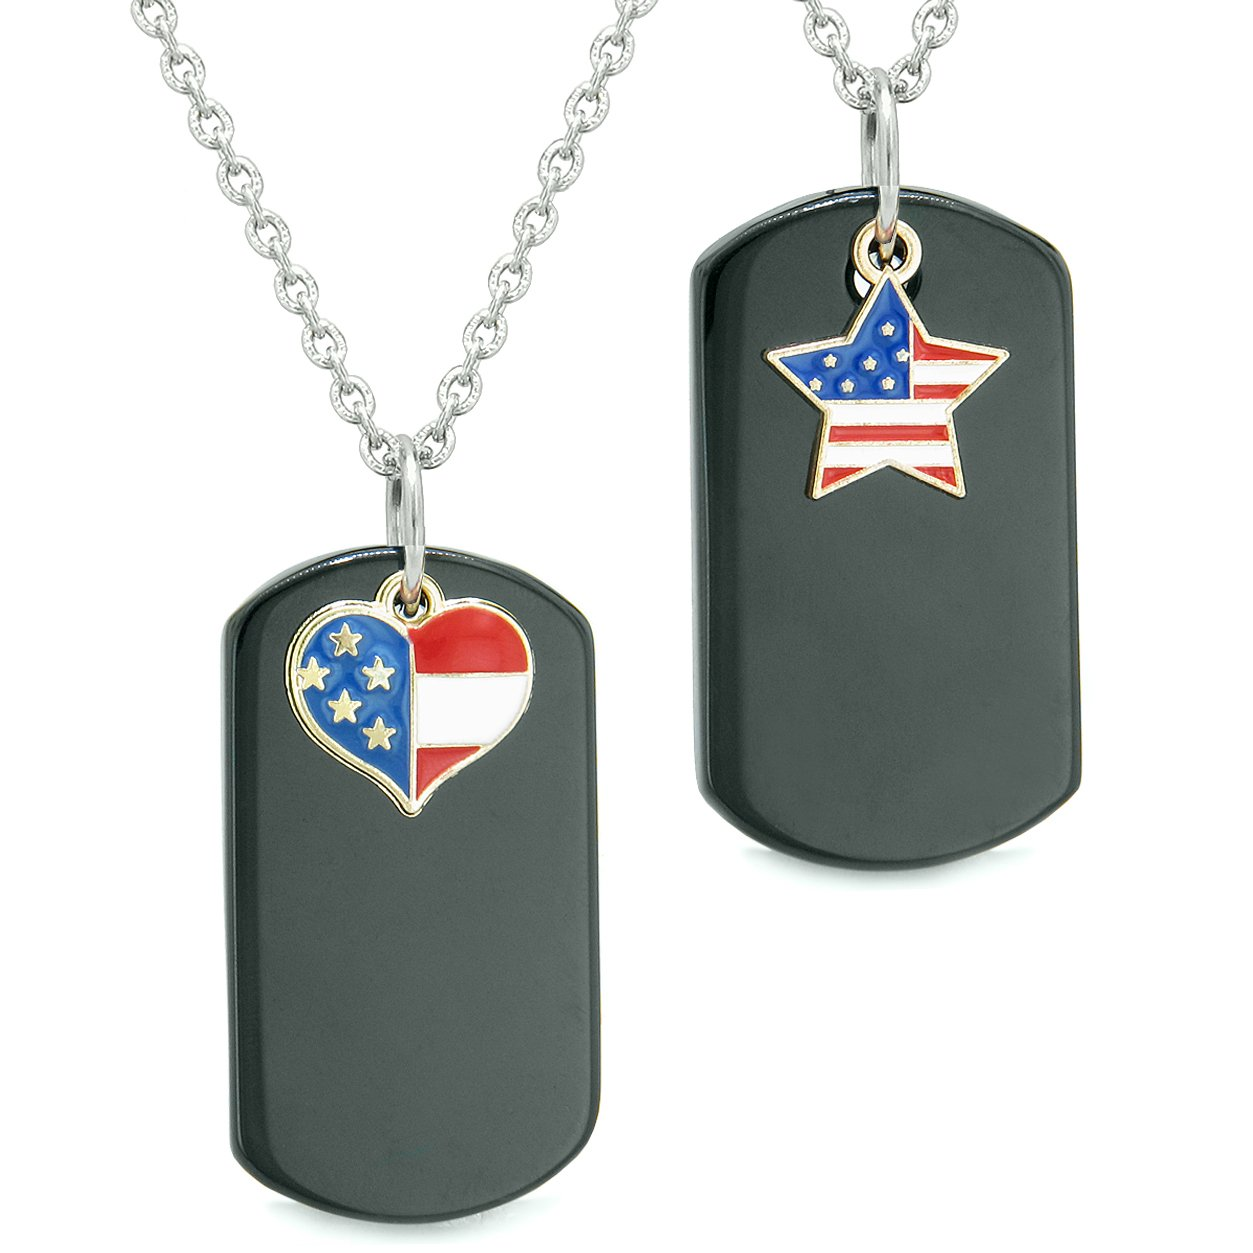 Proud American Flag Super Heart and Star Dog Tags Love Couples BFF Set Black Agate Amulet Necklaces